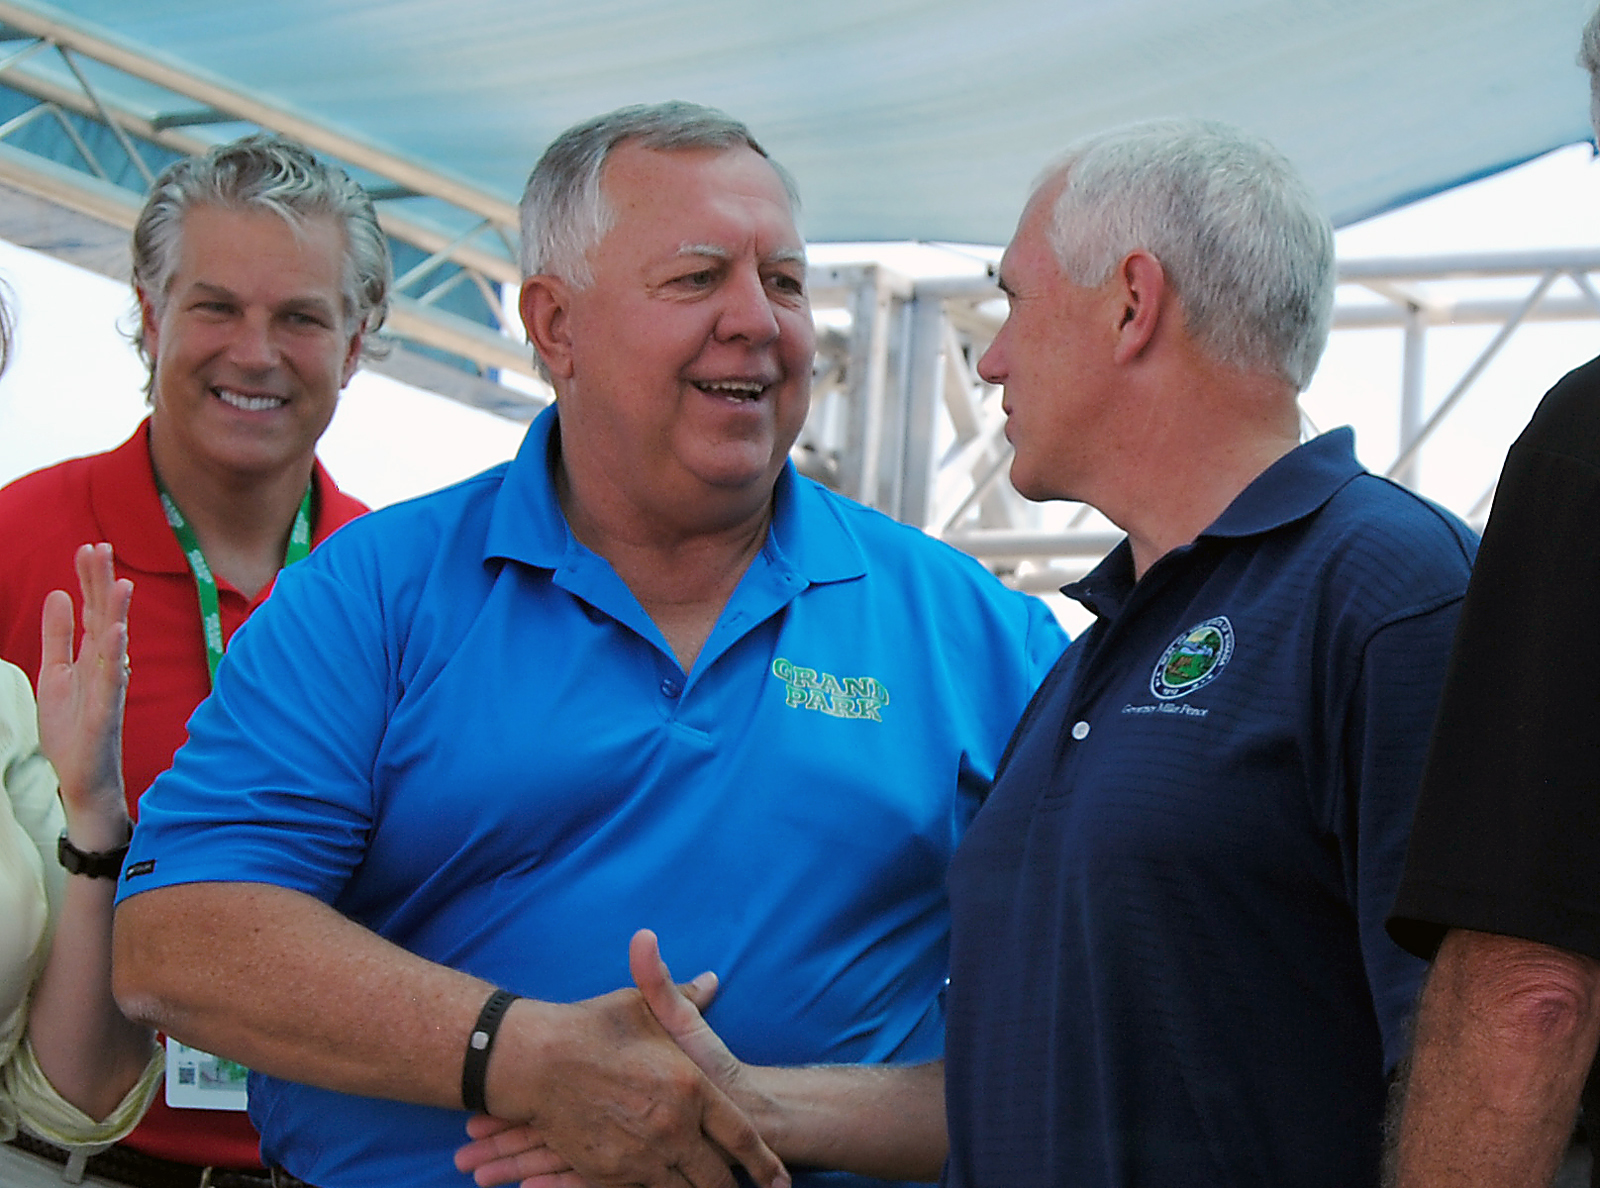 Steve Henke shakes Gov. Mike Pence's hand after the ribbon cutting of Grand Park Sports Complex. Henke Development is the Business of the Year recipient and oversaw the city's massive sports recreation project. (File photo)